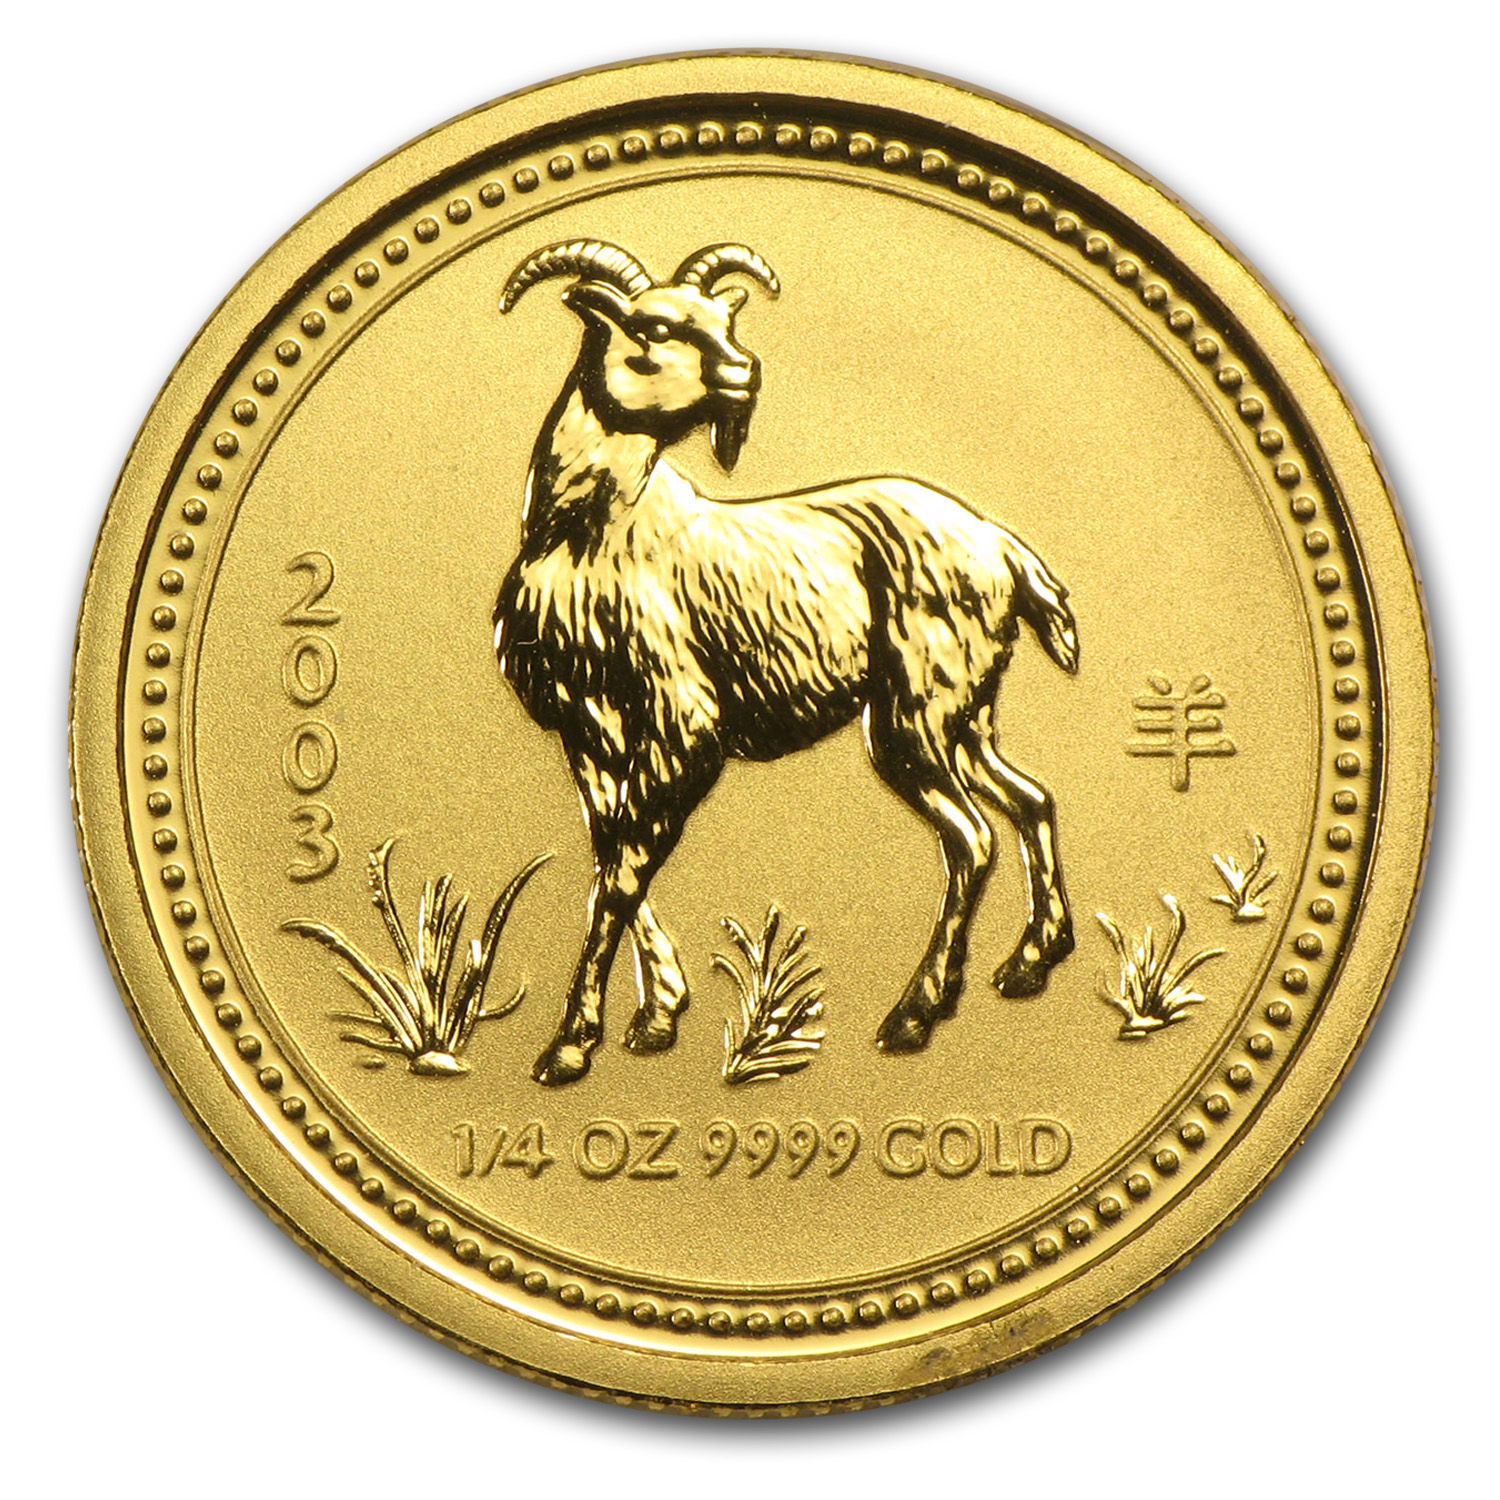 2003 1/4 oz Gold Lunar Year of the Goat BU (Series I)